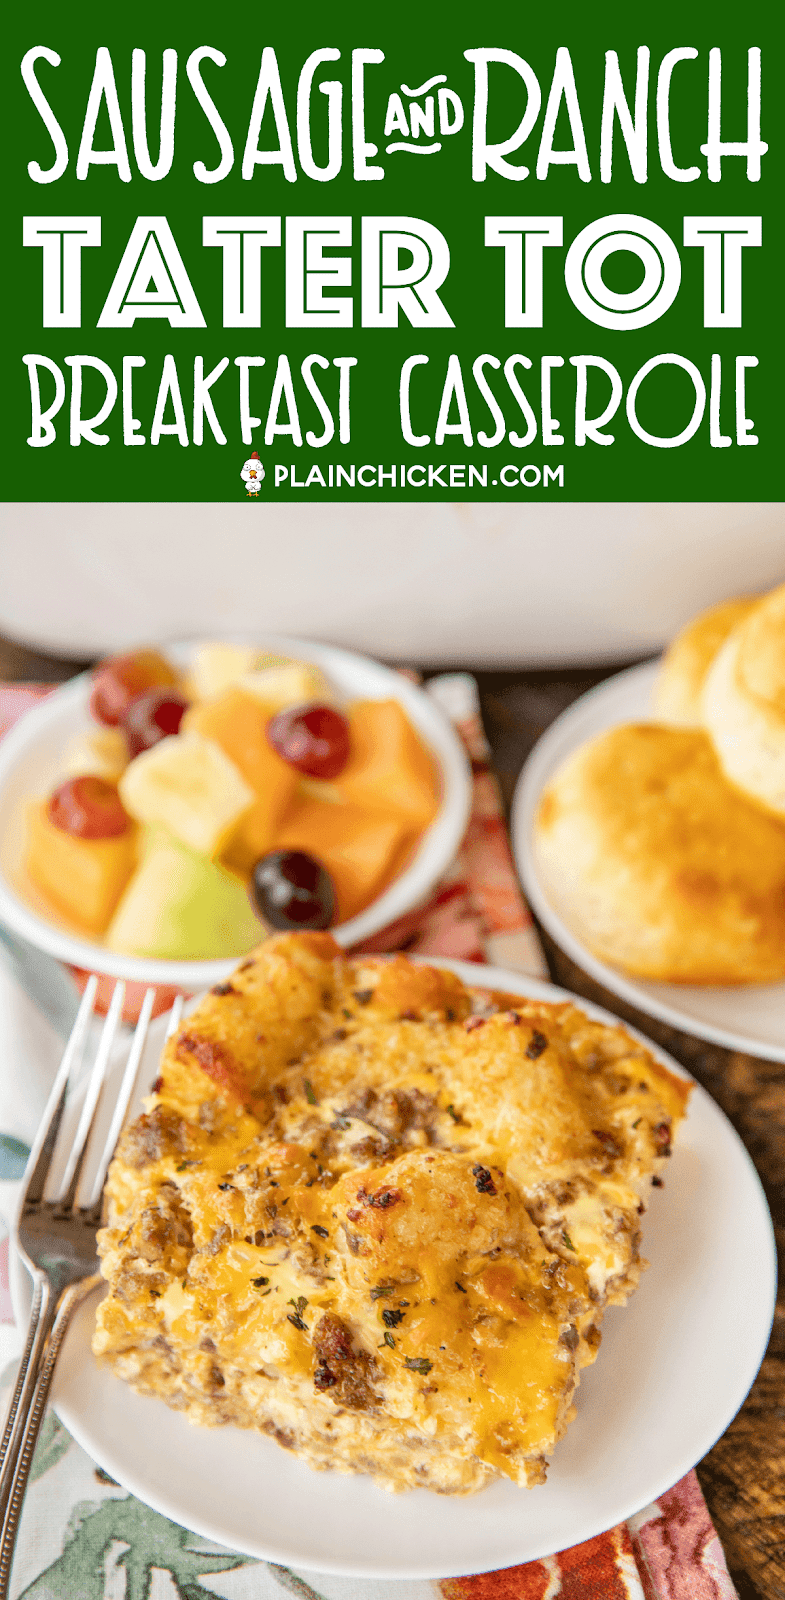 breakfast casserole slice on a plate next to fruit and biscuits